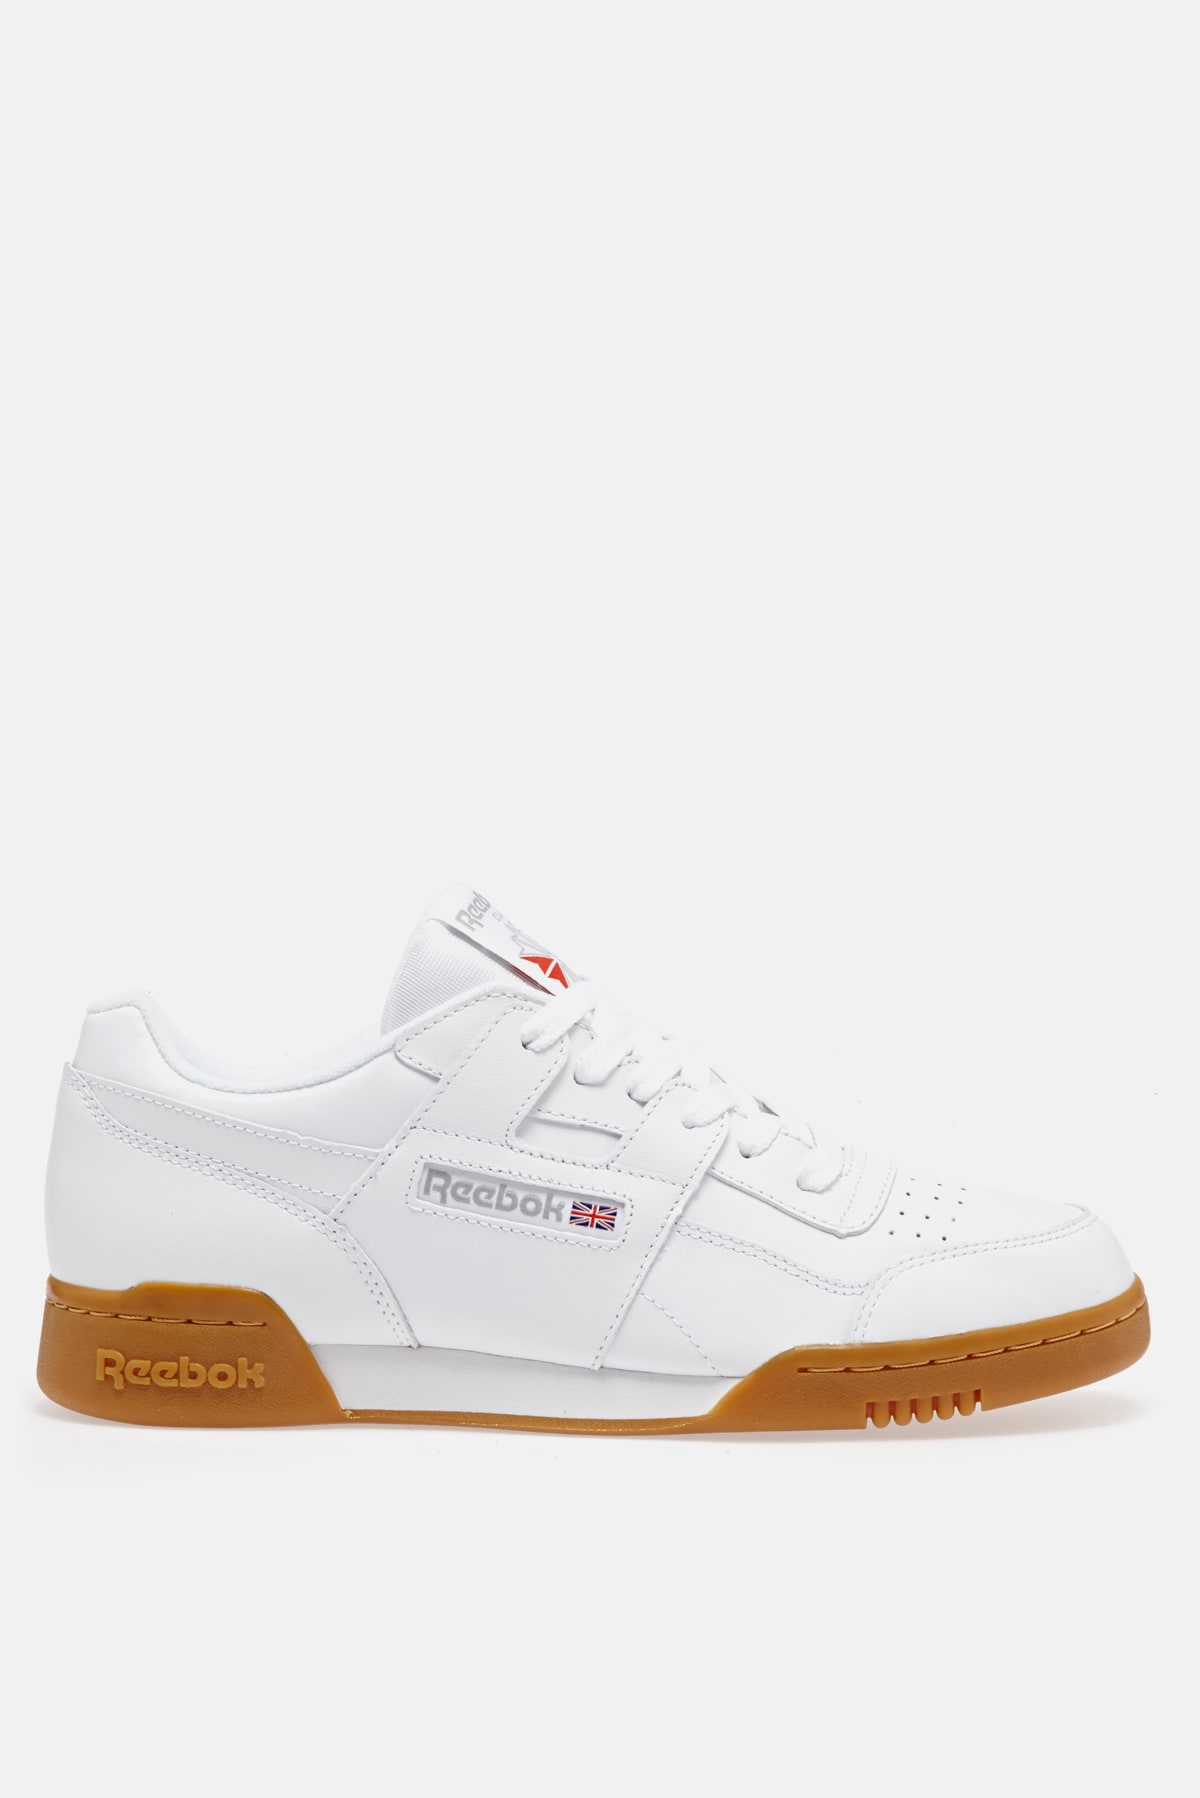 baddcd9cc91 Reebok Classics Workout Plus Shoes available from Priory